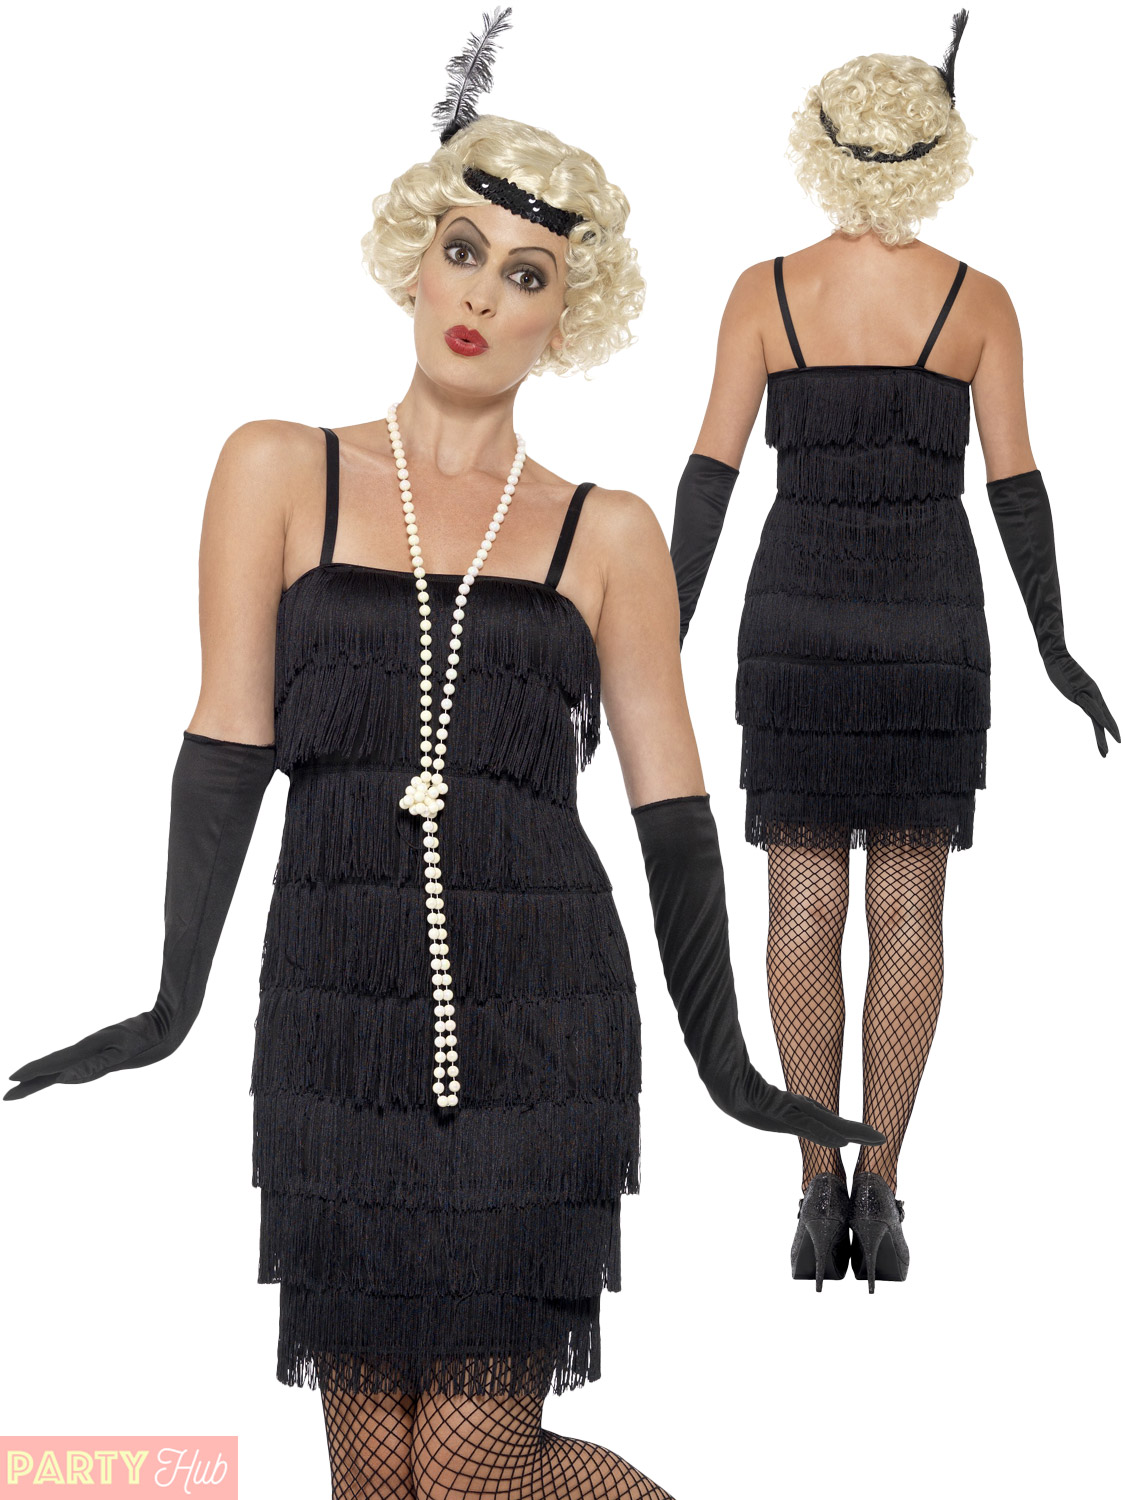 Gatsby clothing for women